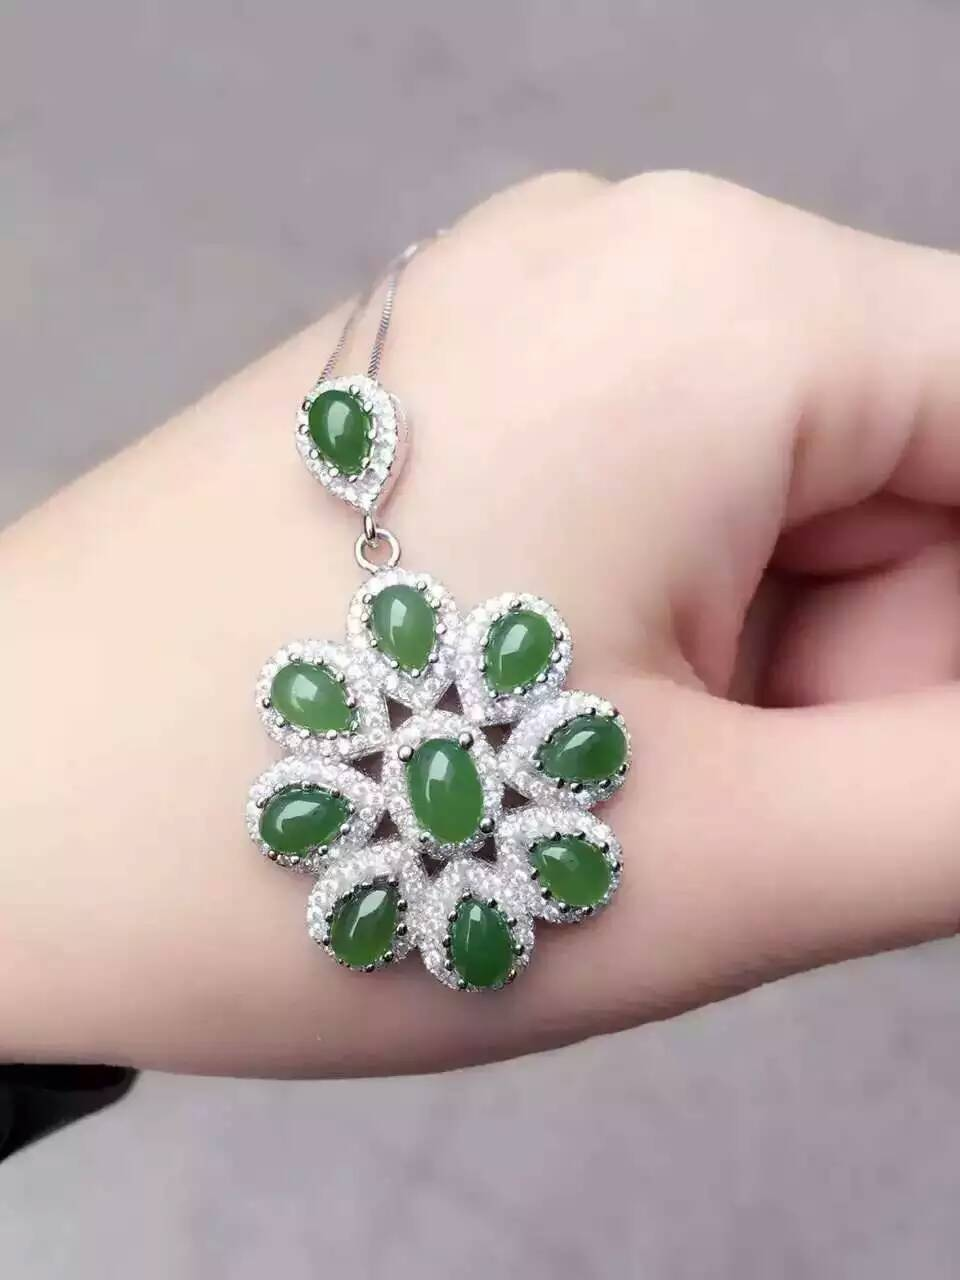 Natural green jasper gem pendant S925 silver Natural gemstone Pendant Necklace trendy Flower group women party fine jewelry givenchy very irresistible парфюмерная вода very irresistible парфюмерная вода